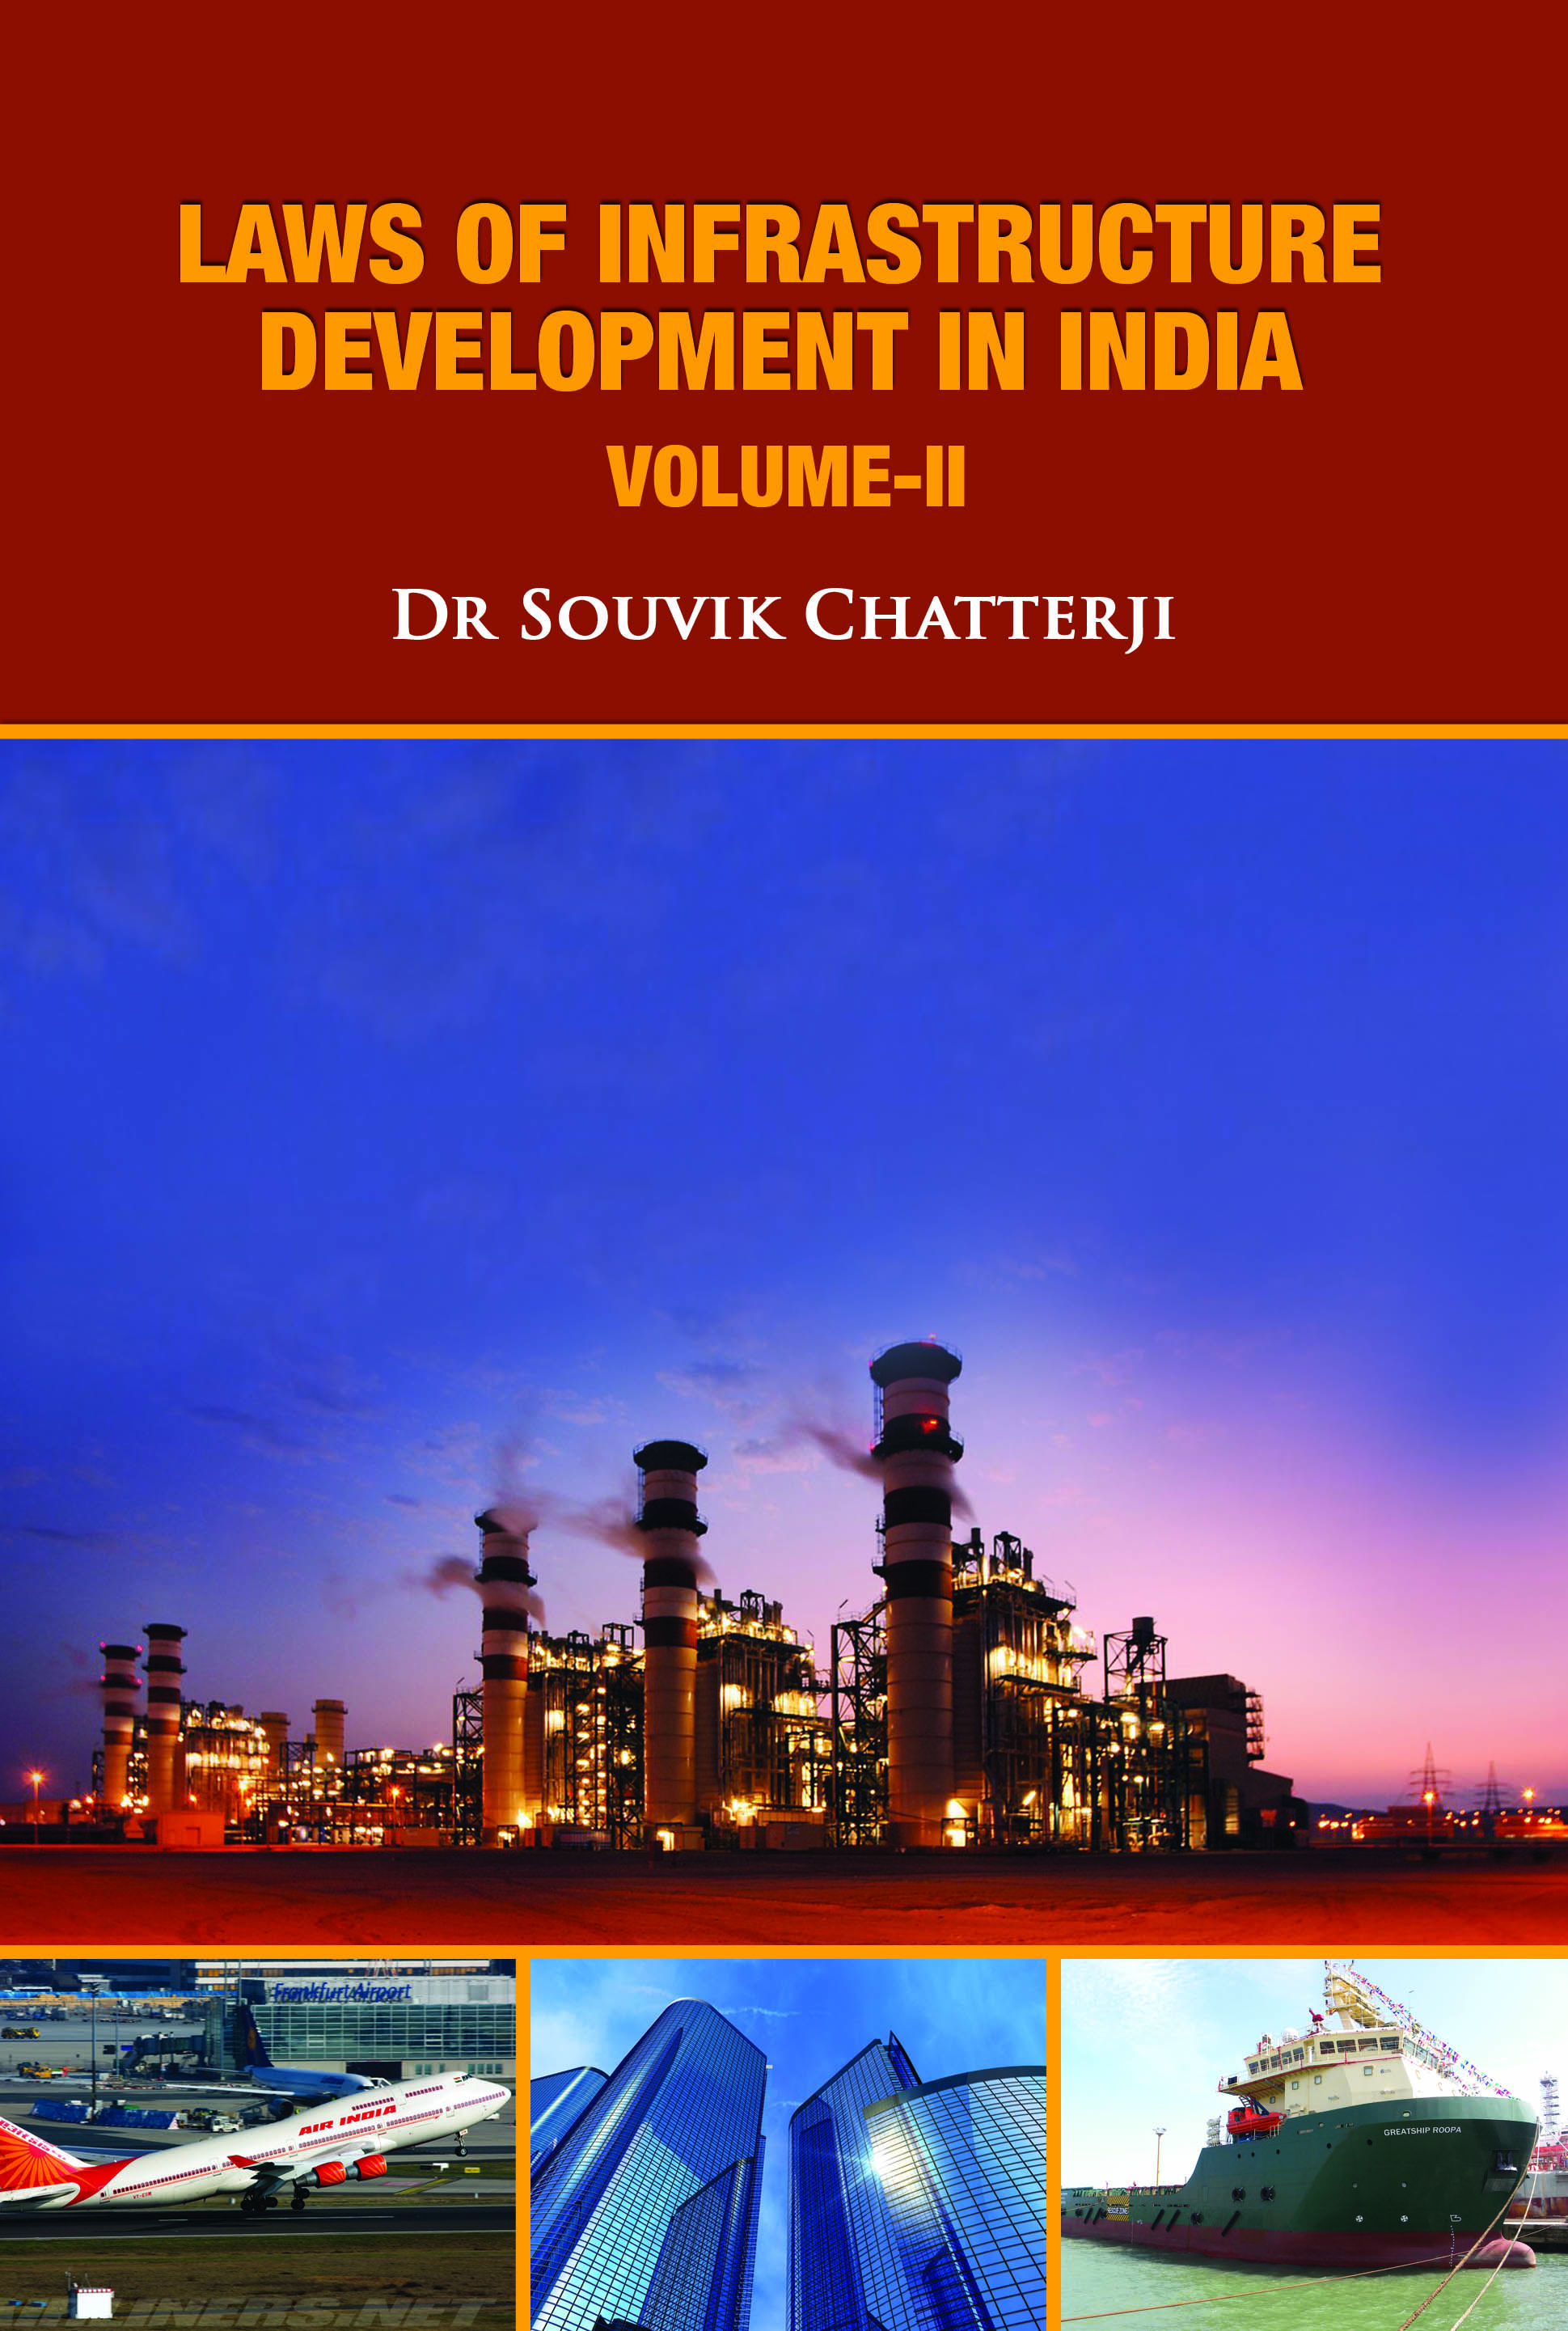 Laws of Infrastructure Development in India-Vol.2